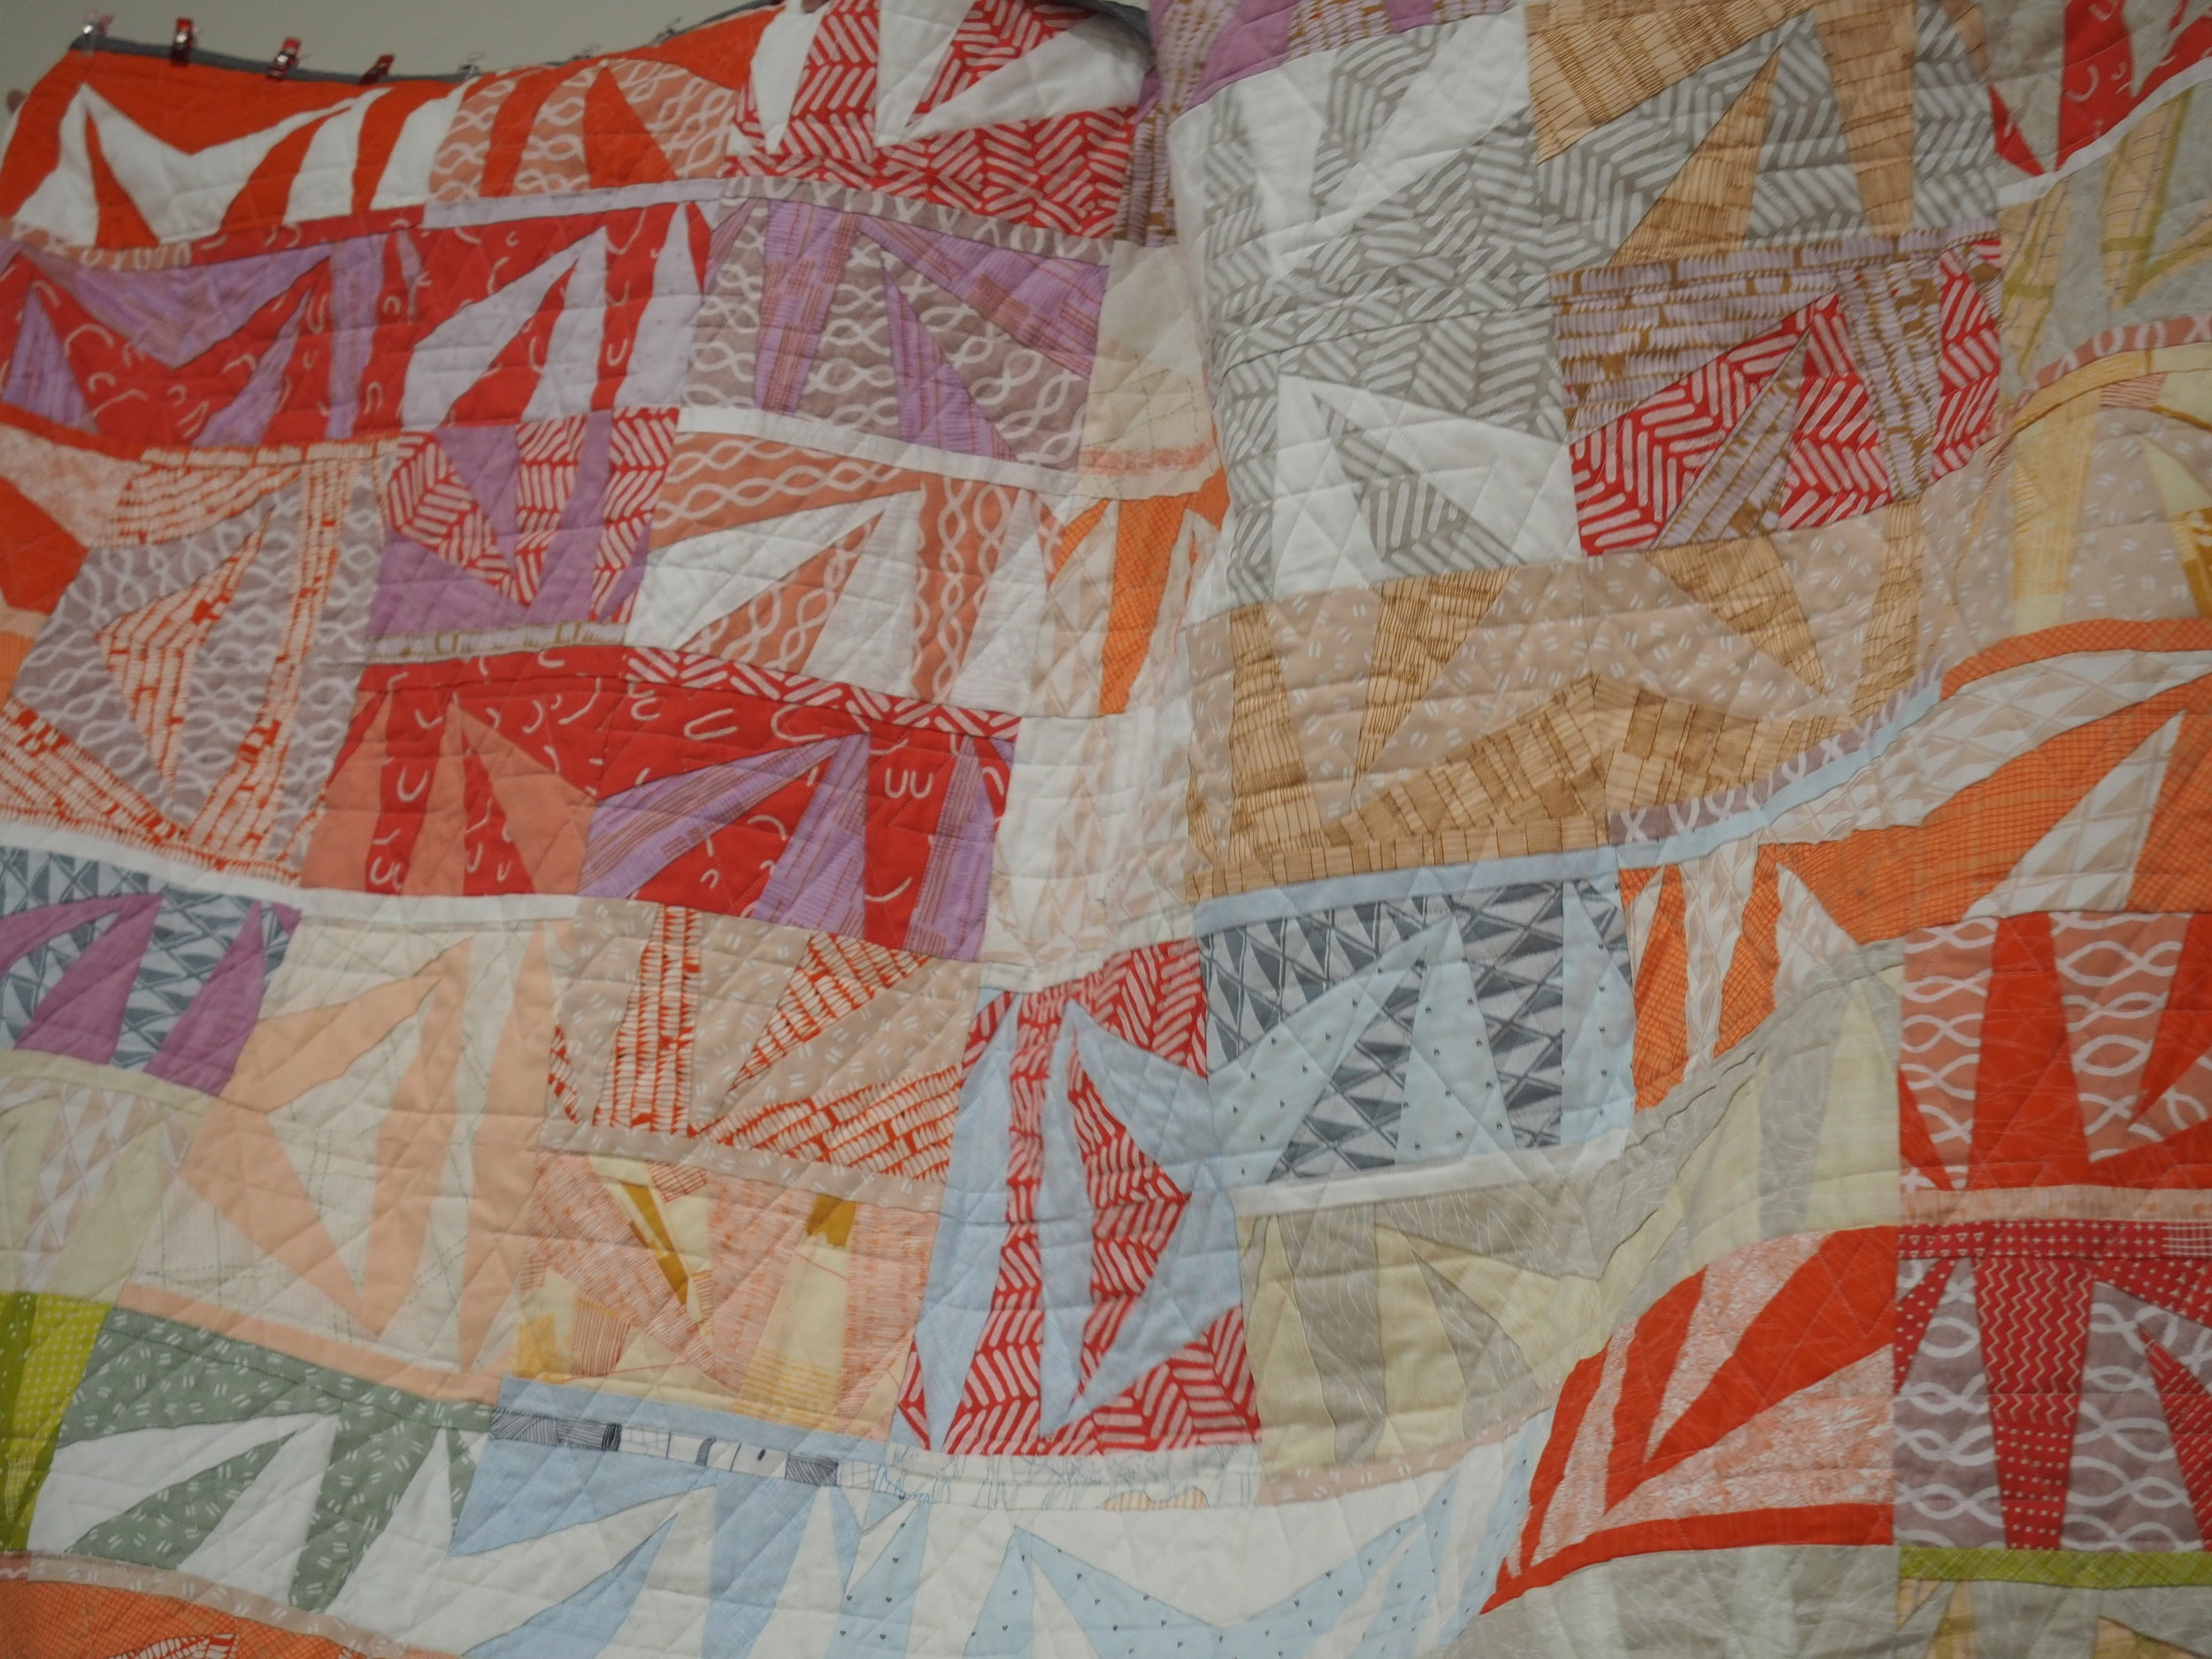 Detail of Eads Quilt